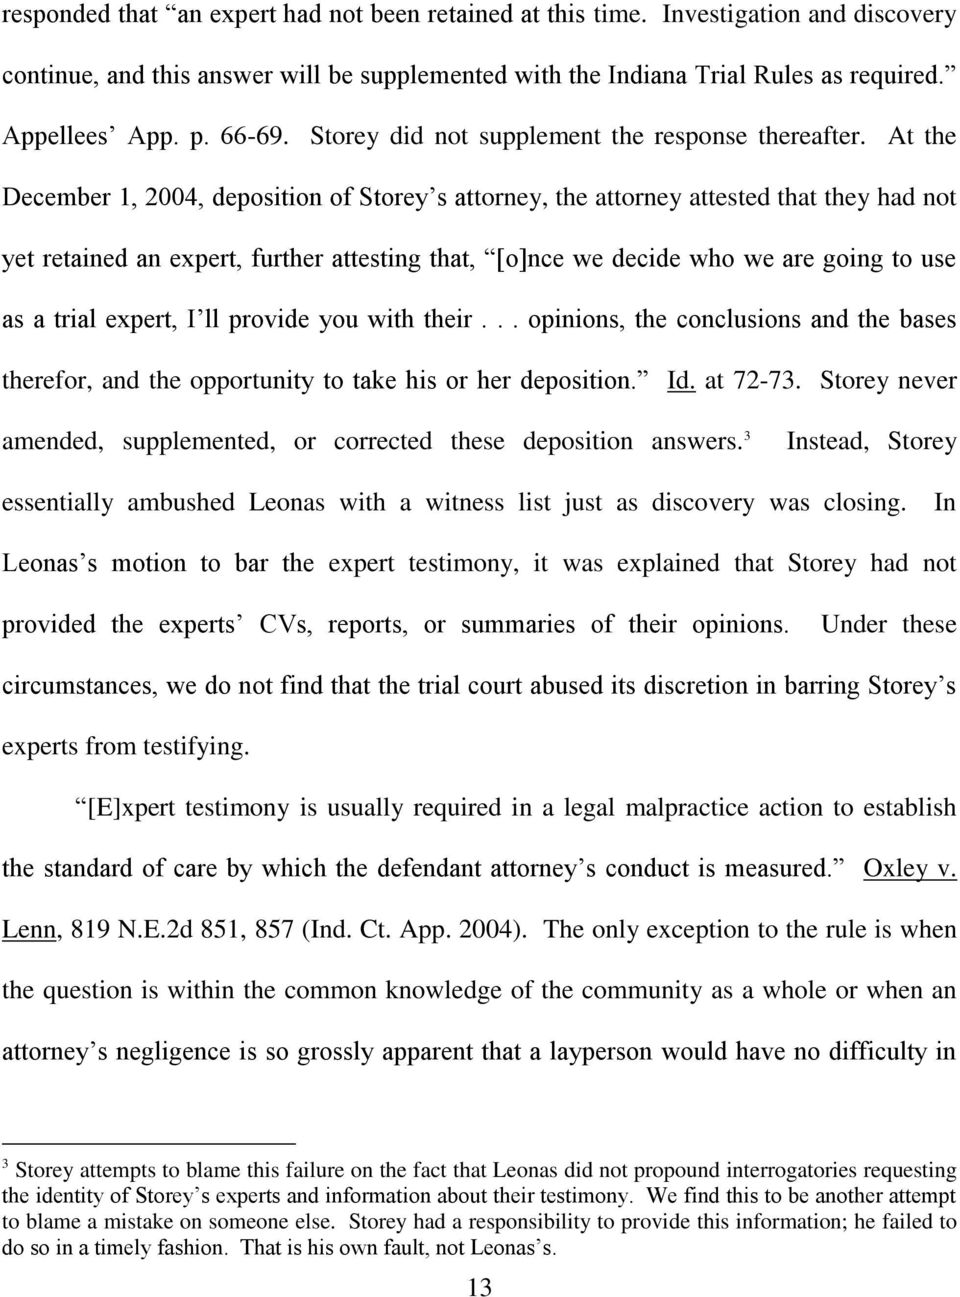 At the December 1, 2004, deposition of Storey s attorney, the attorney attested that they had not yet retained an expert, further attesting that, [o]nce we decide who we are going to use as a trial